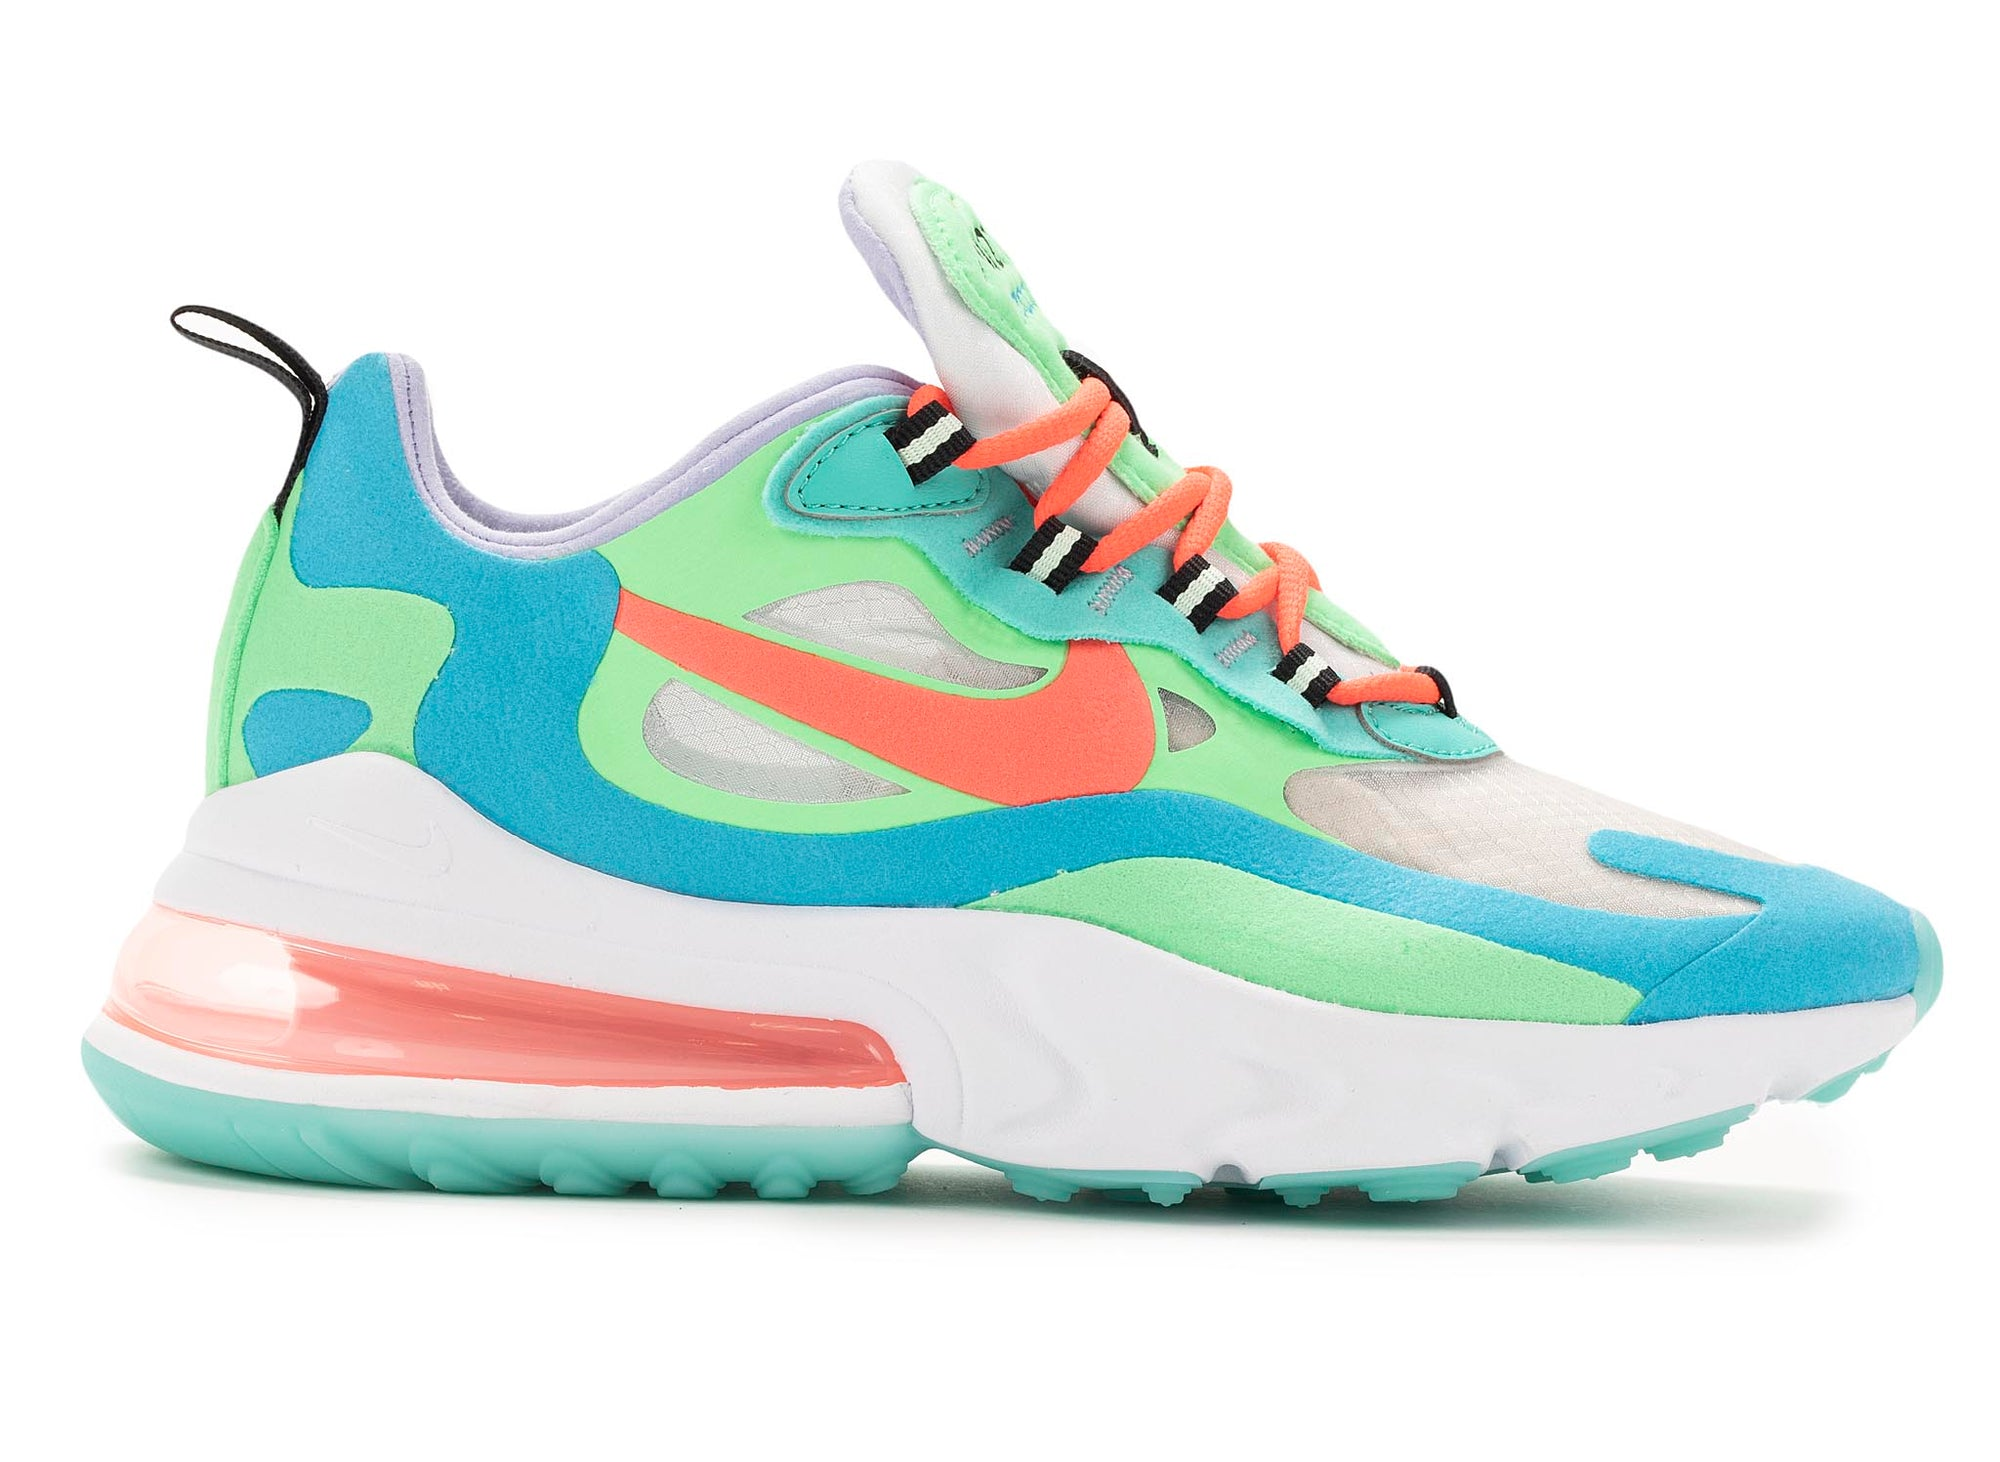 Nike Air Max 270 React Women's 'Electro Green'